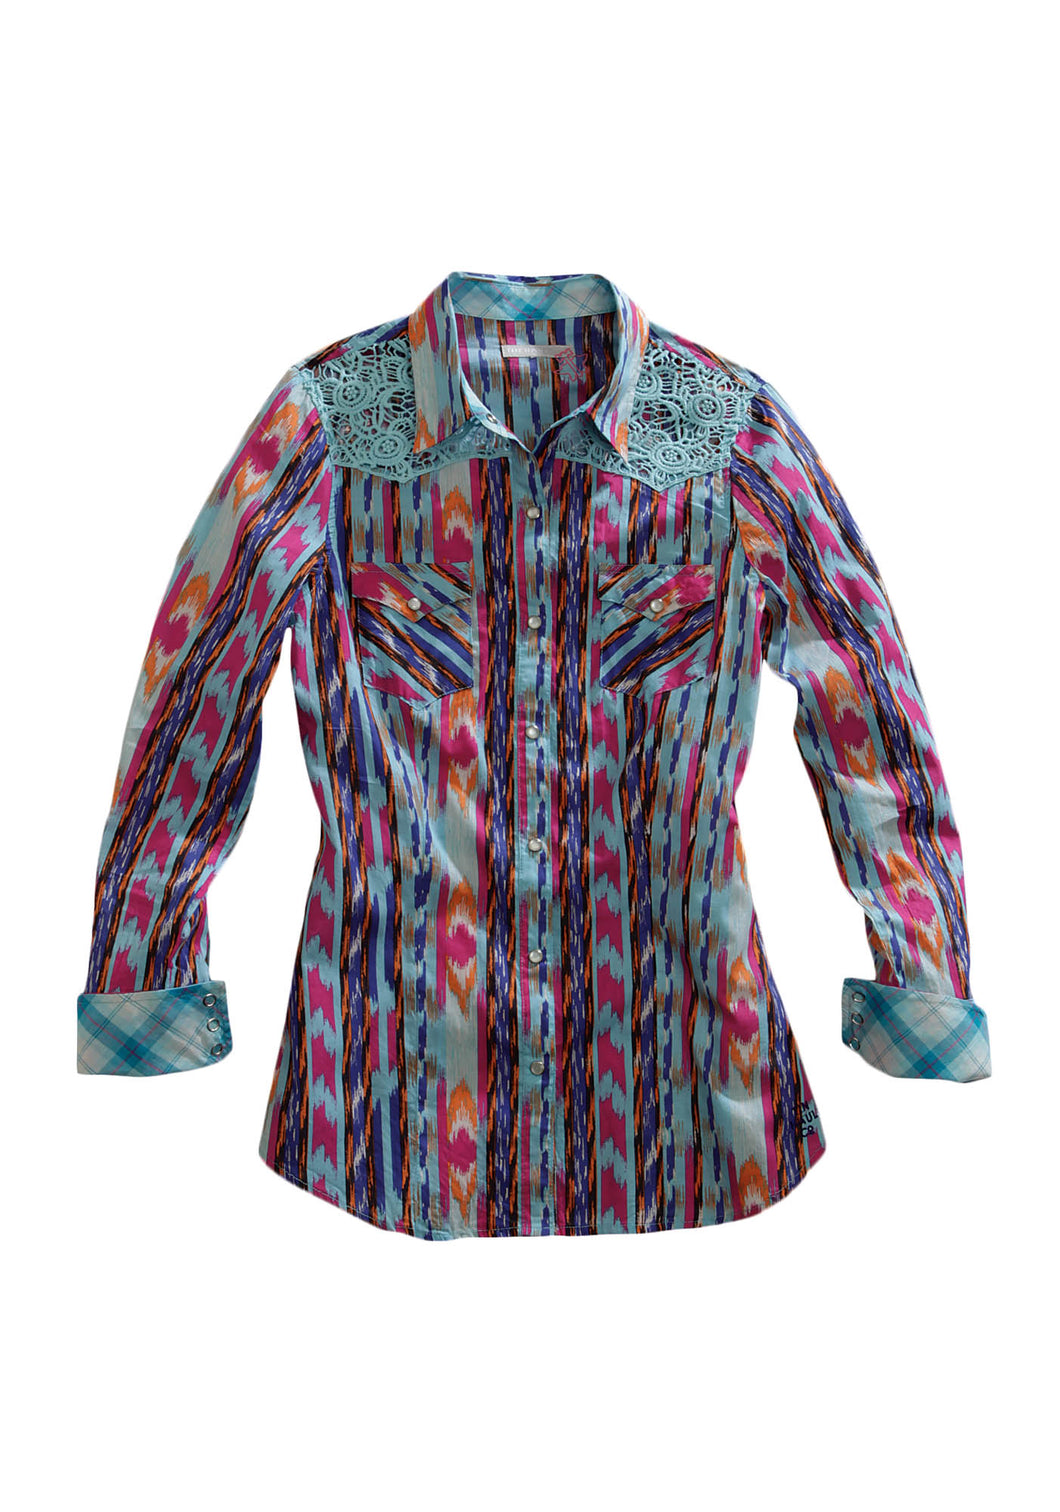 Tin Haul Collection Tinhaul Ladies Long Sleeve Shirt 0246 Multi Ikat Print